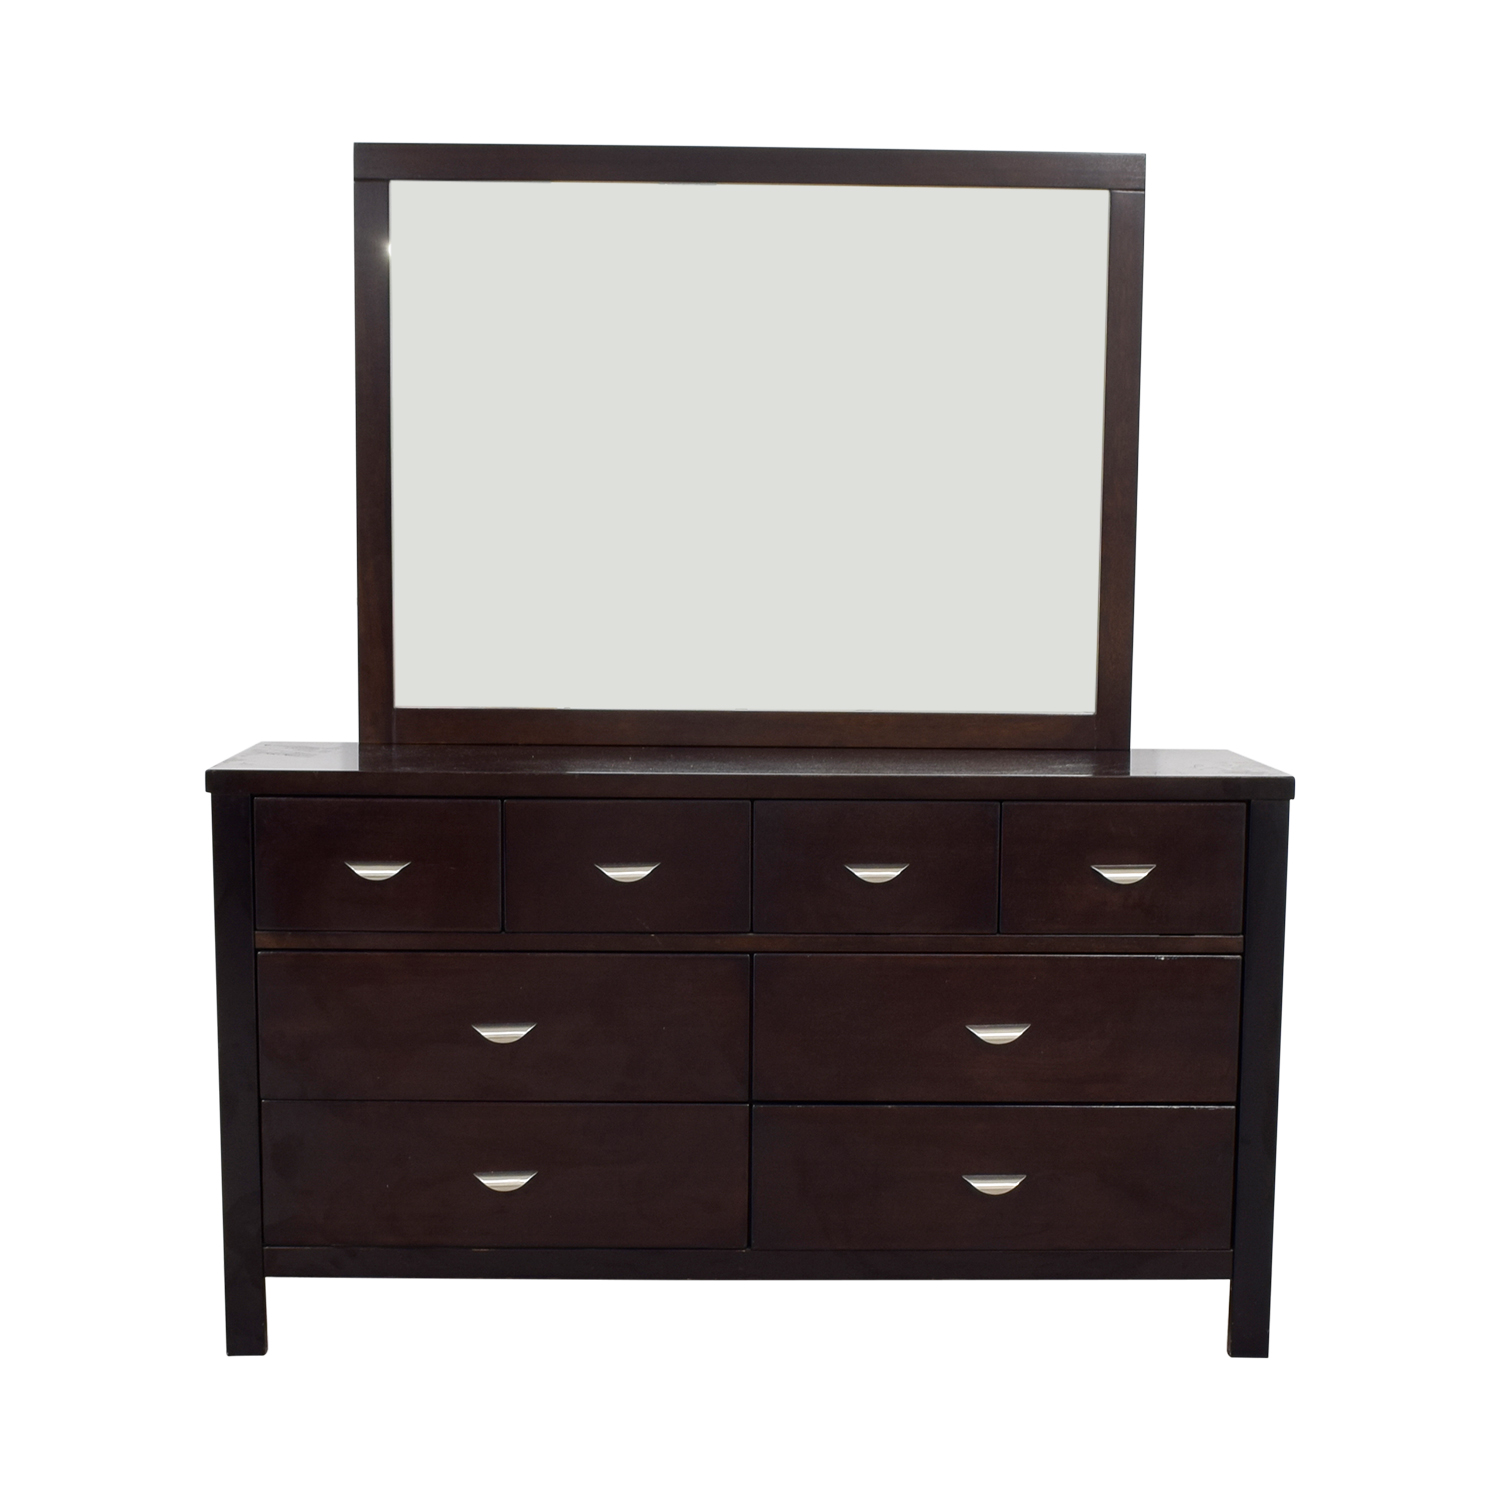 Ligna Six-Drawer Dresser with Mirror Ligna